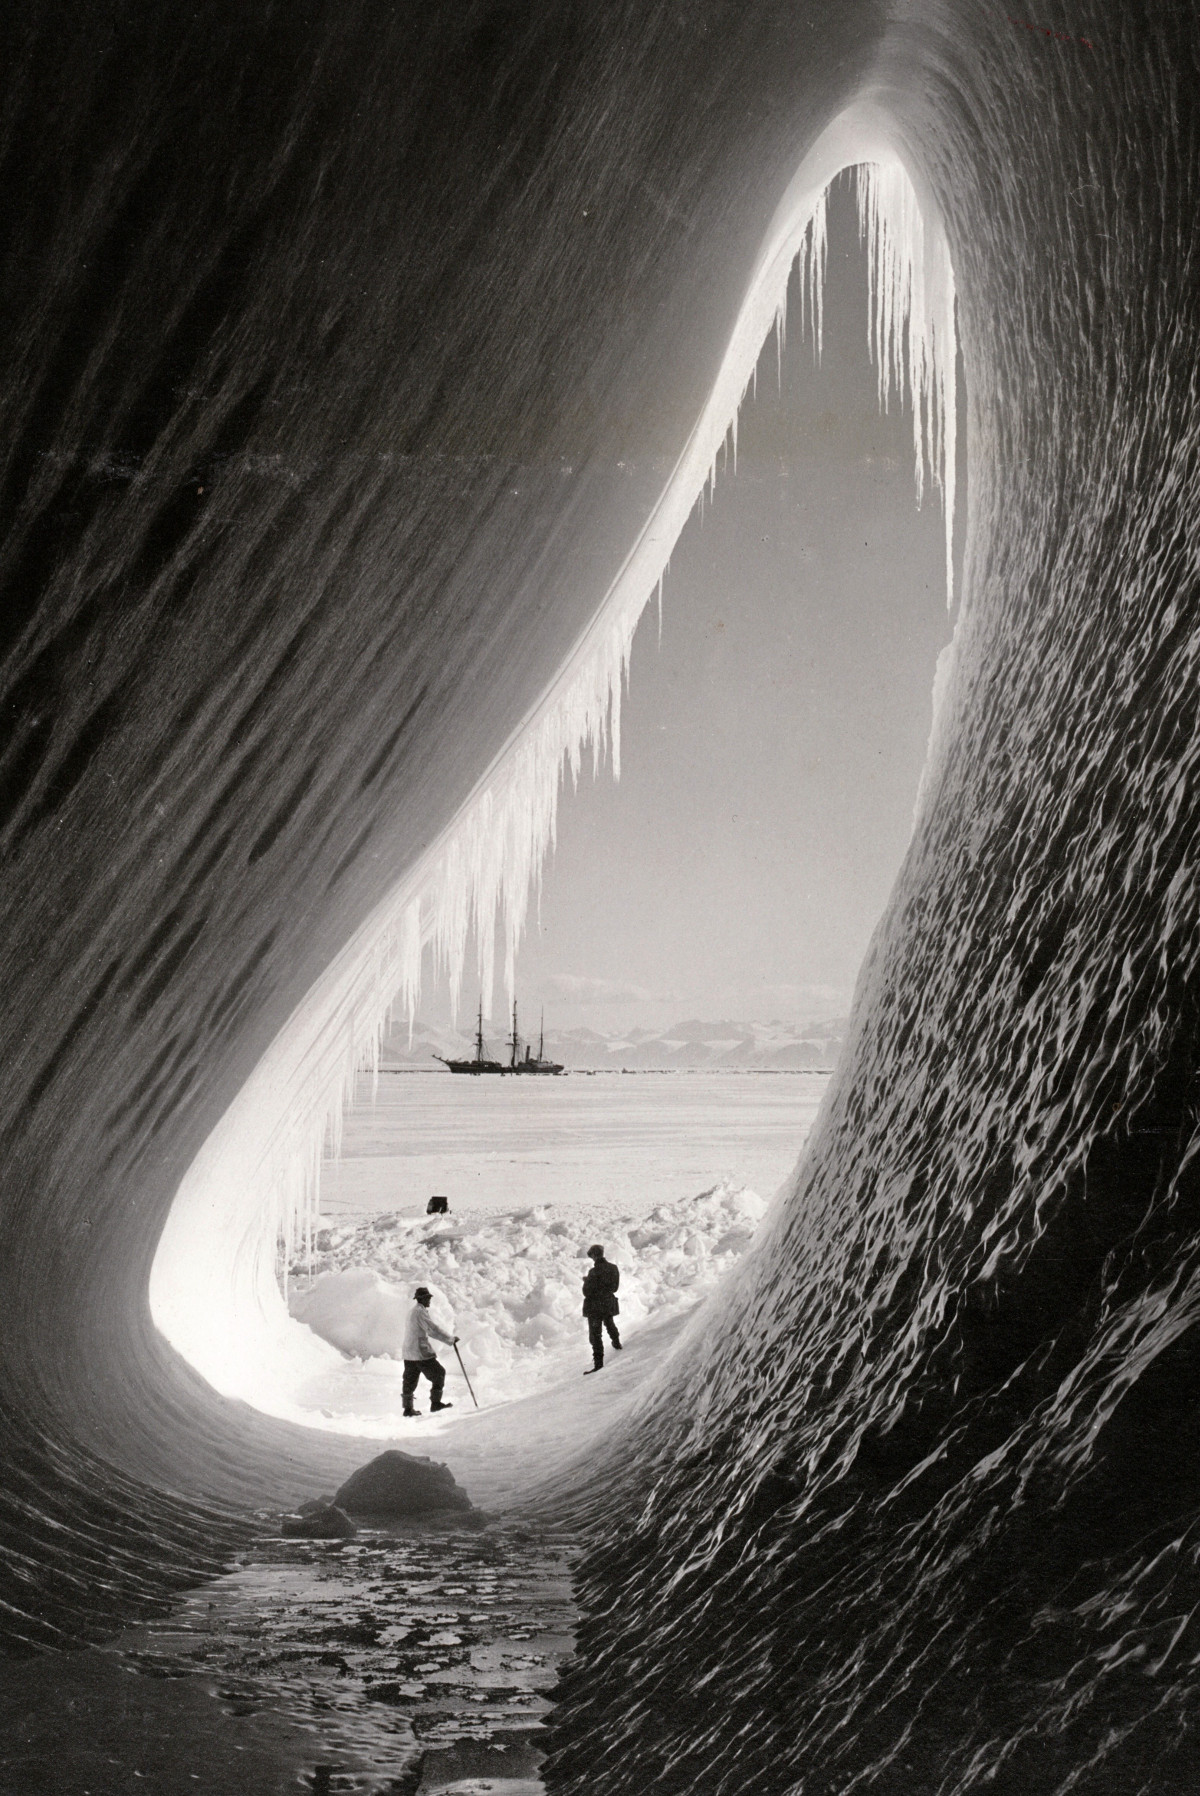 Grotto in an iceberg, photographed during the British Antarctic Expedition of 1911-1913